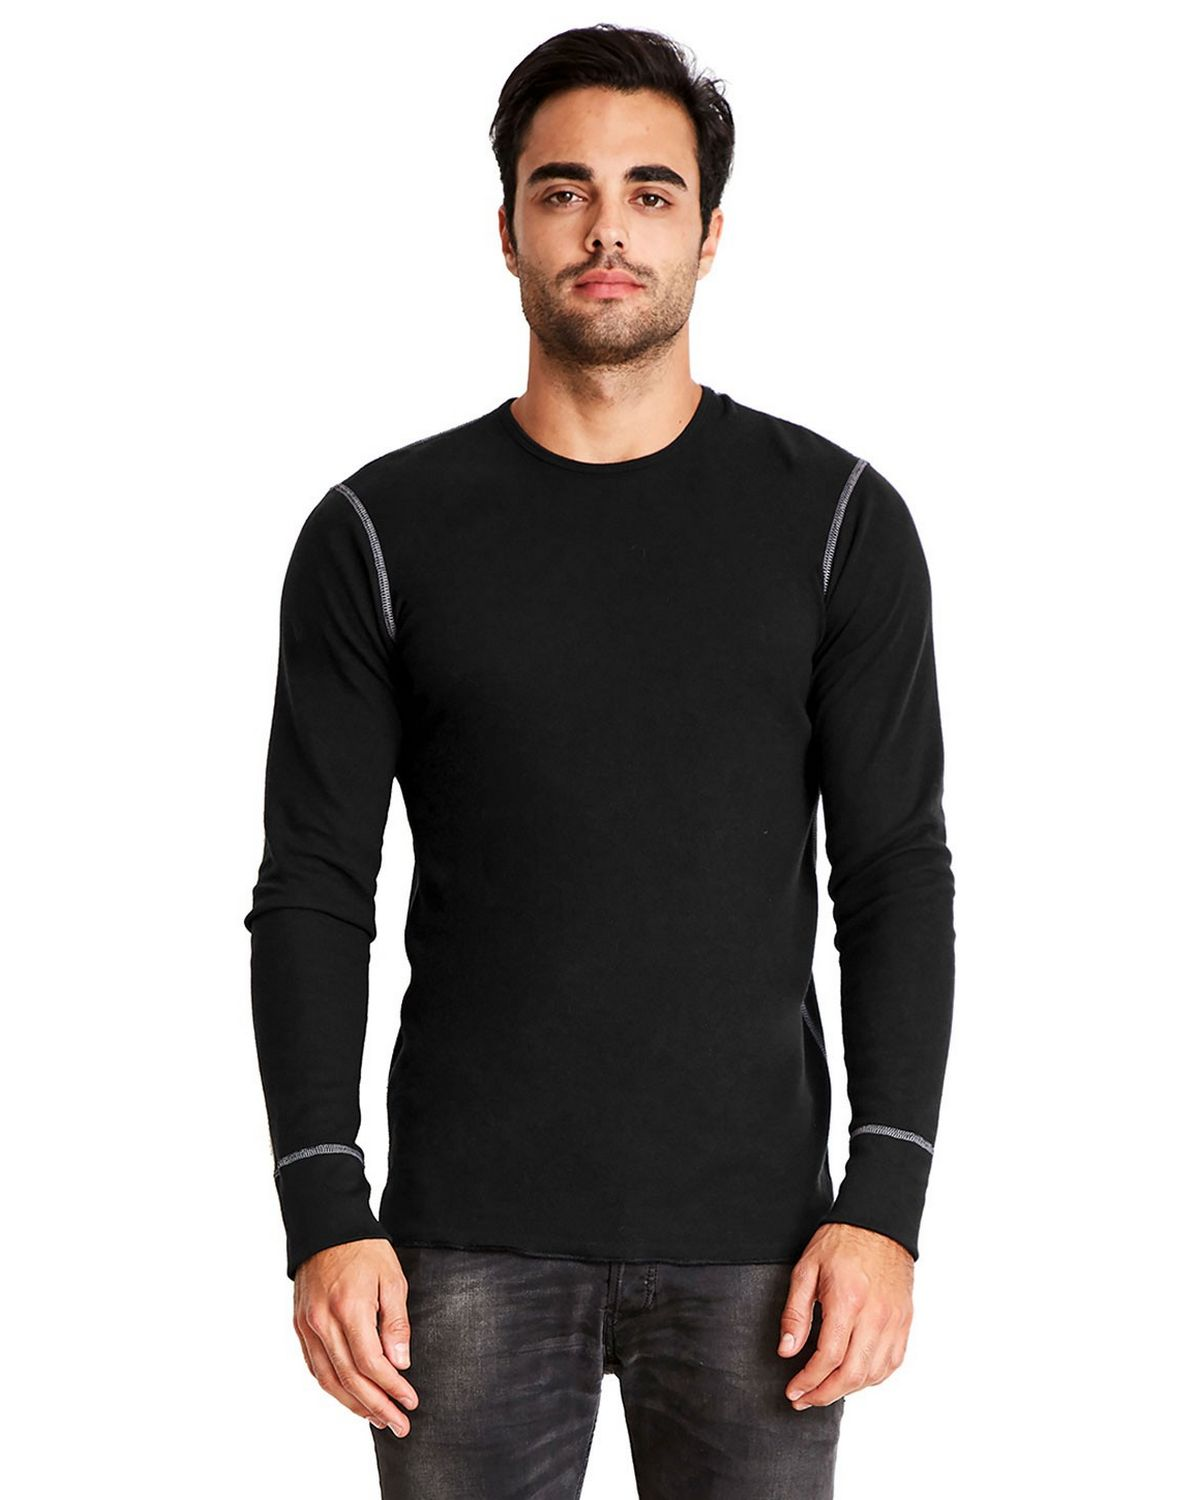 Next Level N8201 Unisex Long-Sleeve Thermal T-Shirt - ApparelnBags.com